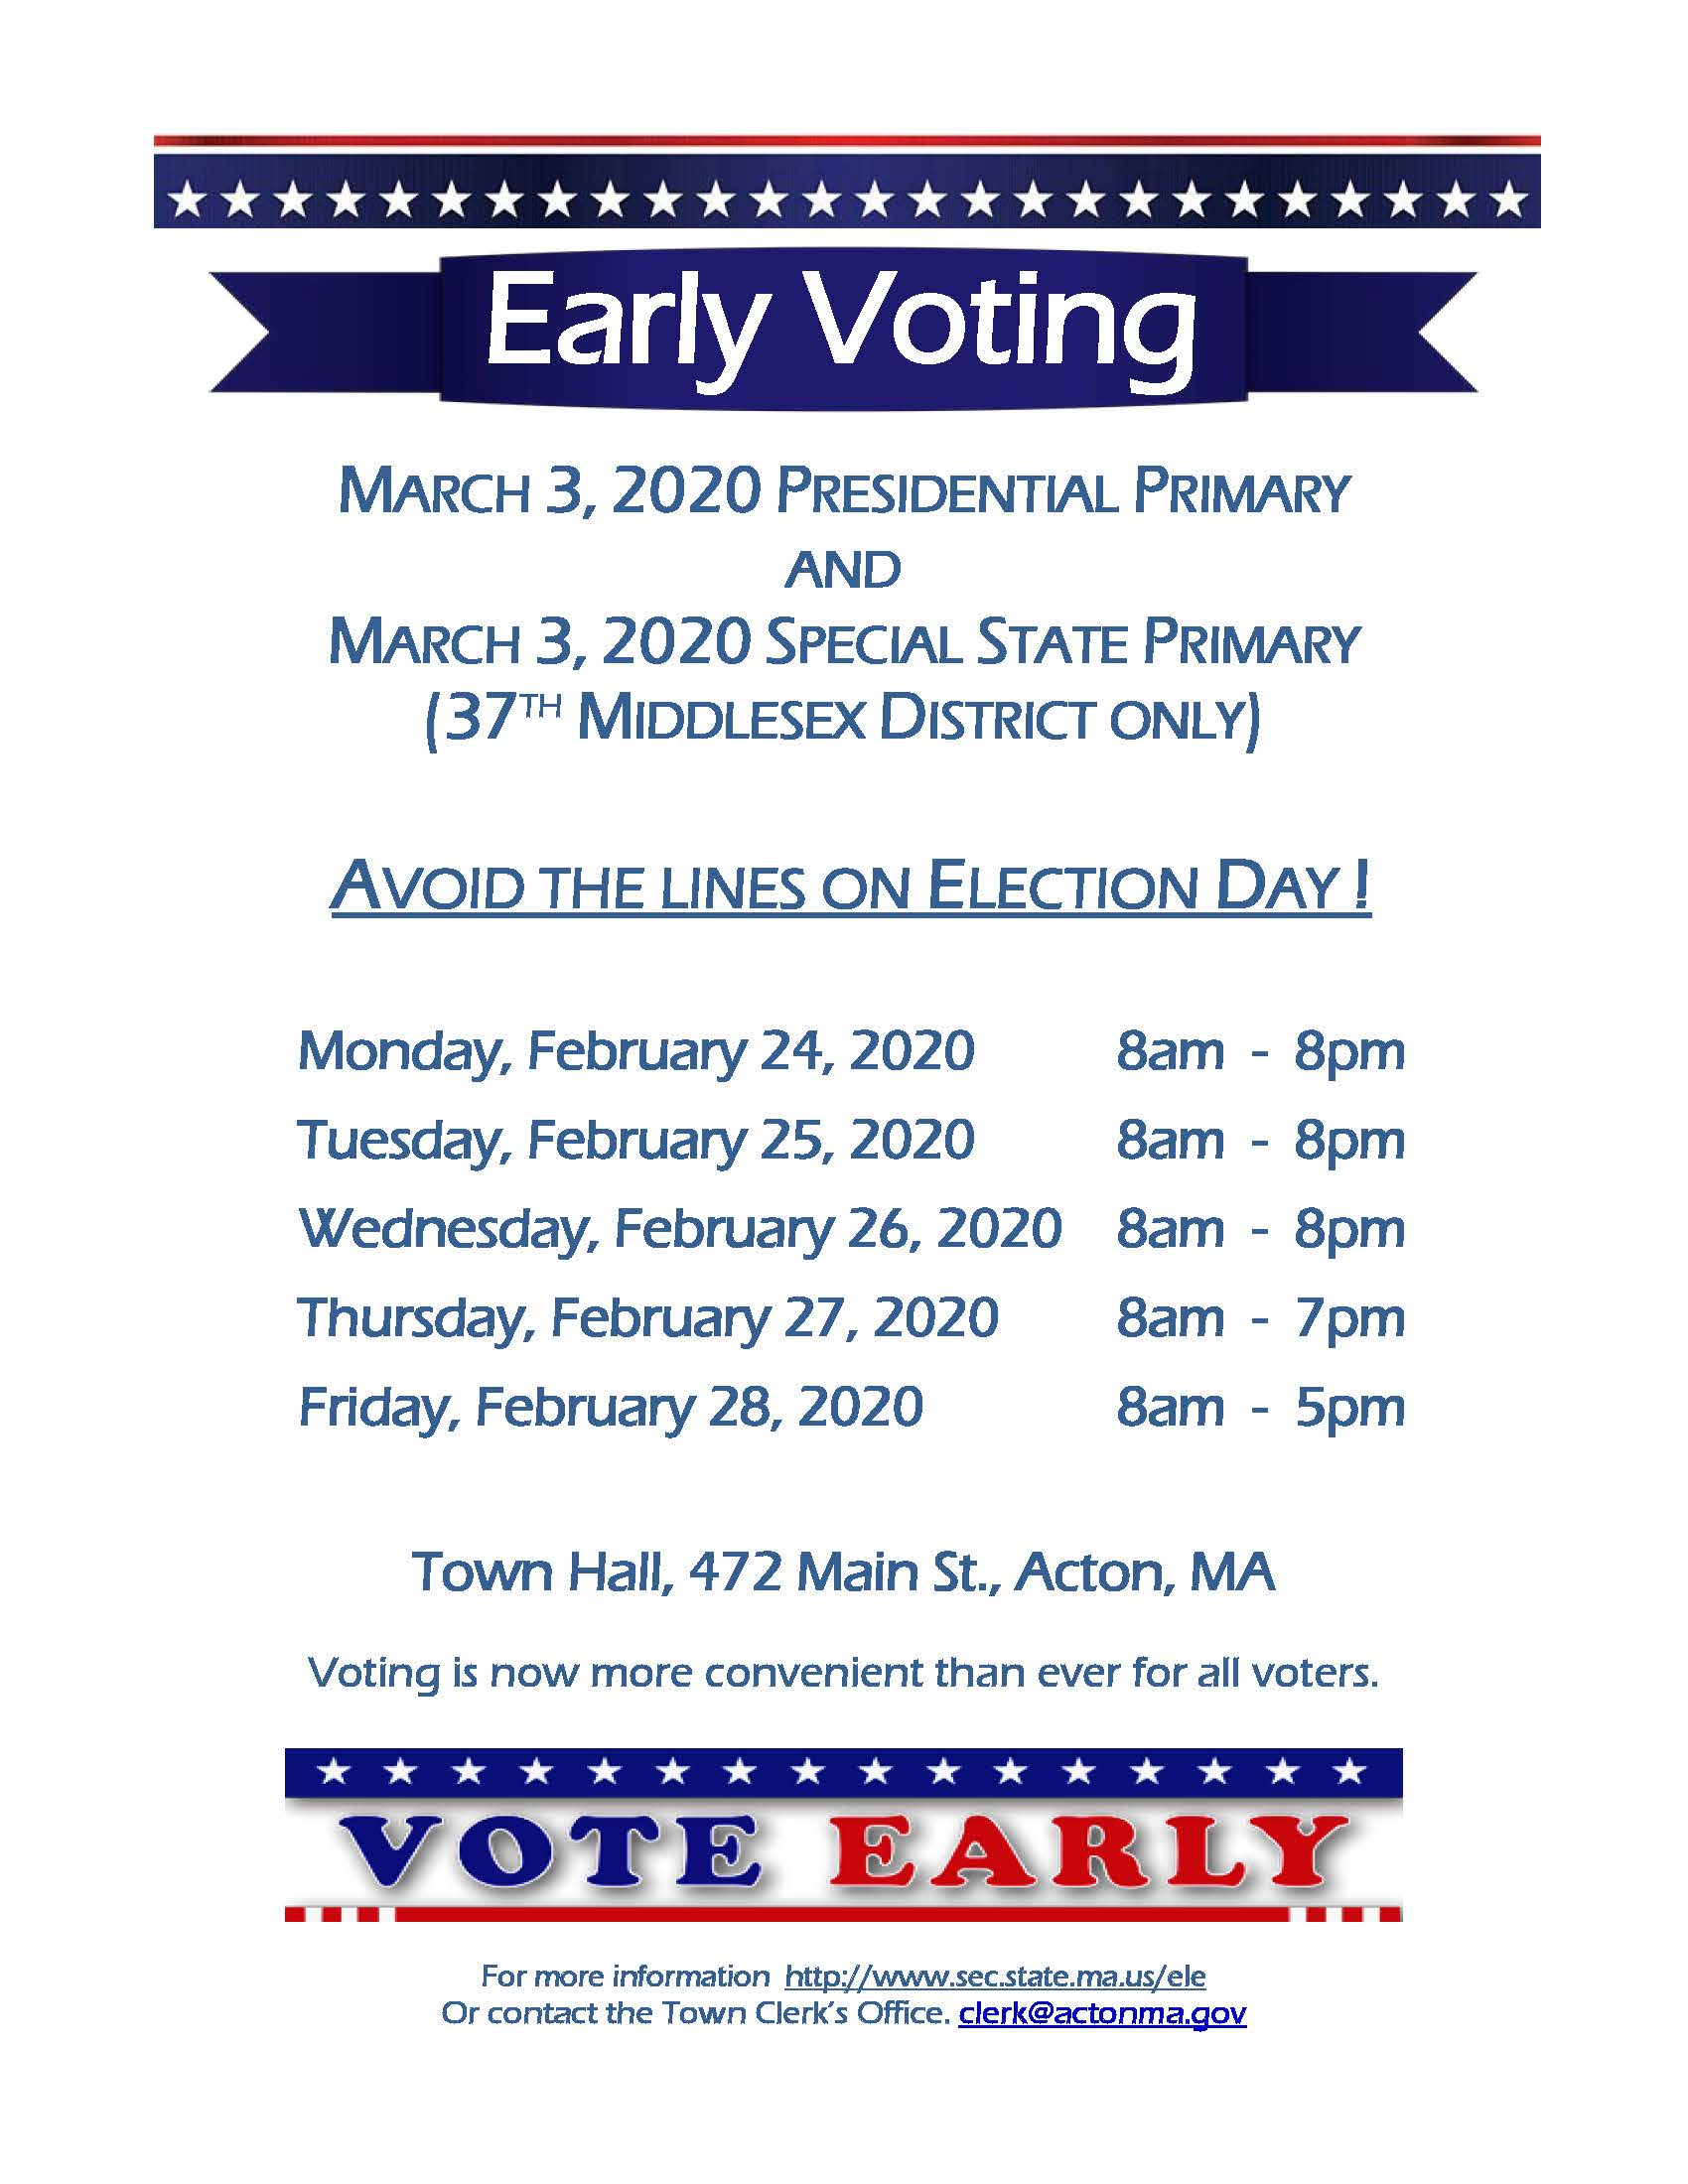 Early Voting flyer March 2020